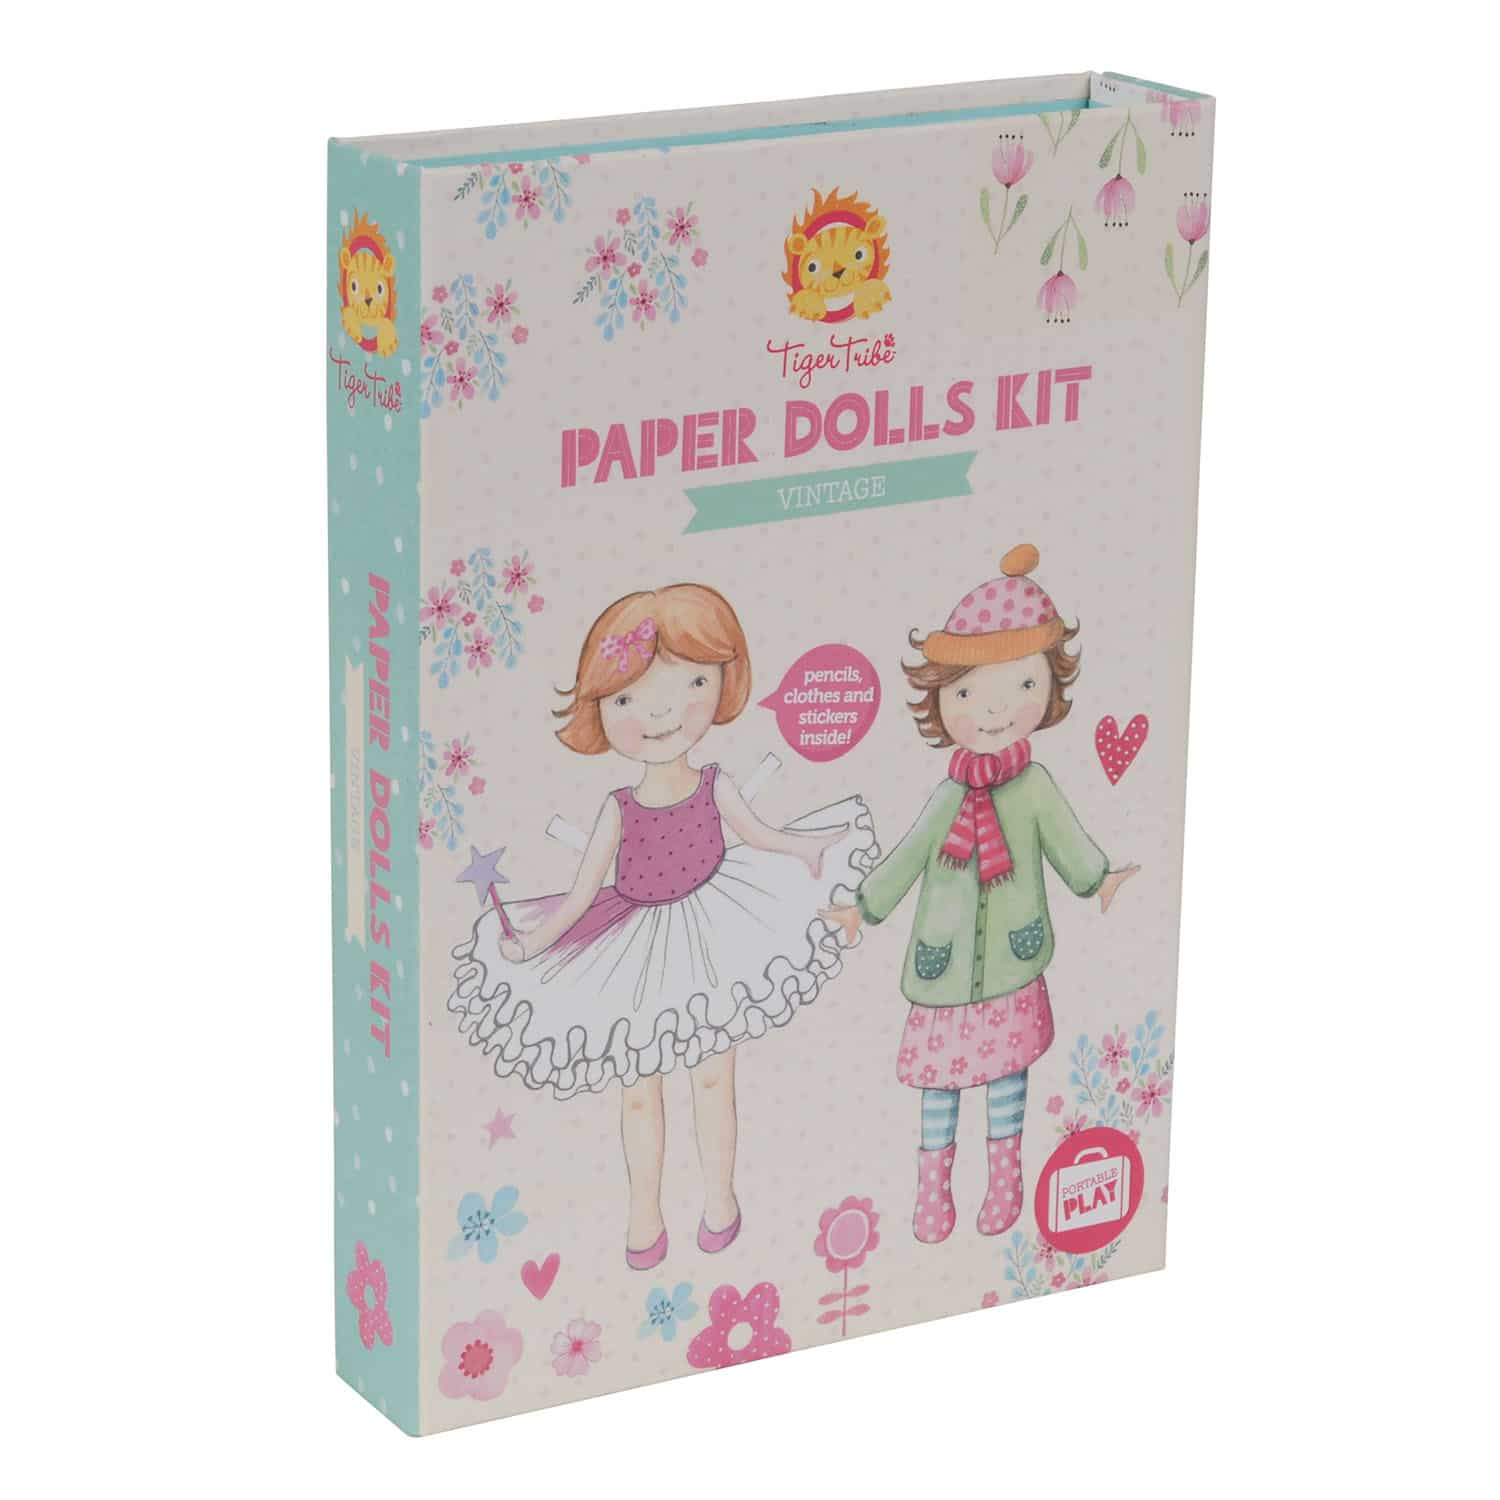 Paper dolls kit - Tiger Tribe